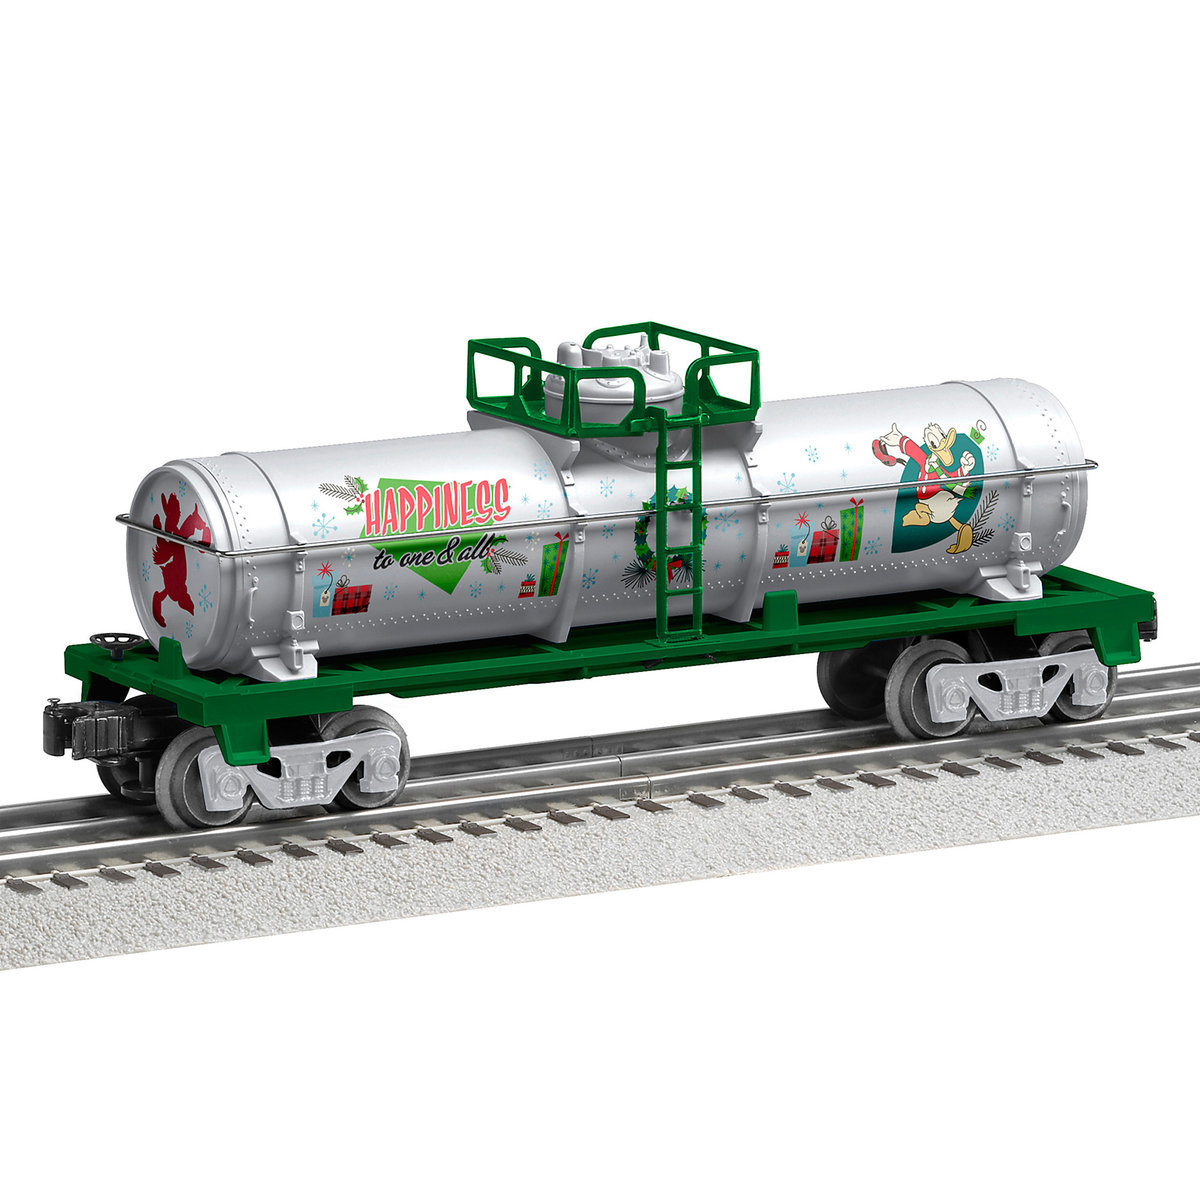 New Lionel Disney Train Sets, Cars & Accessories Out Now ...